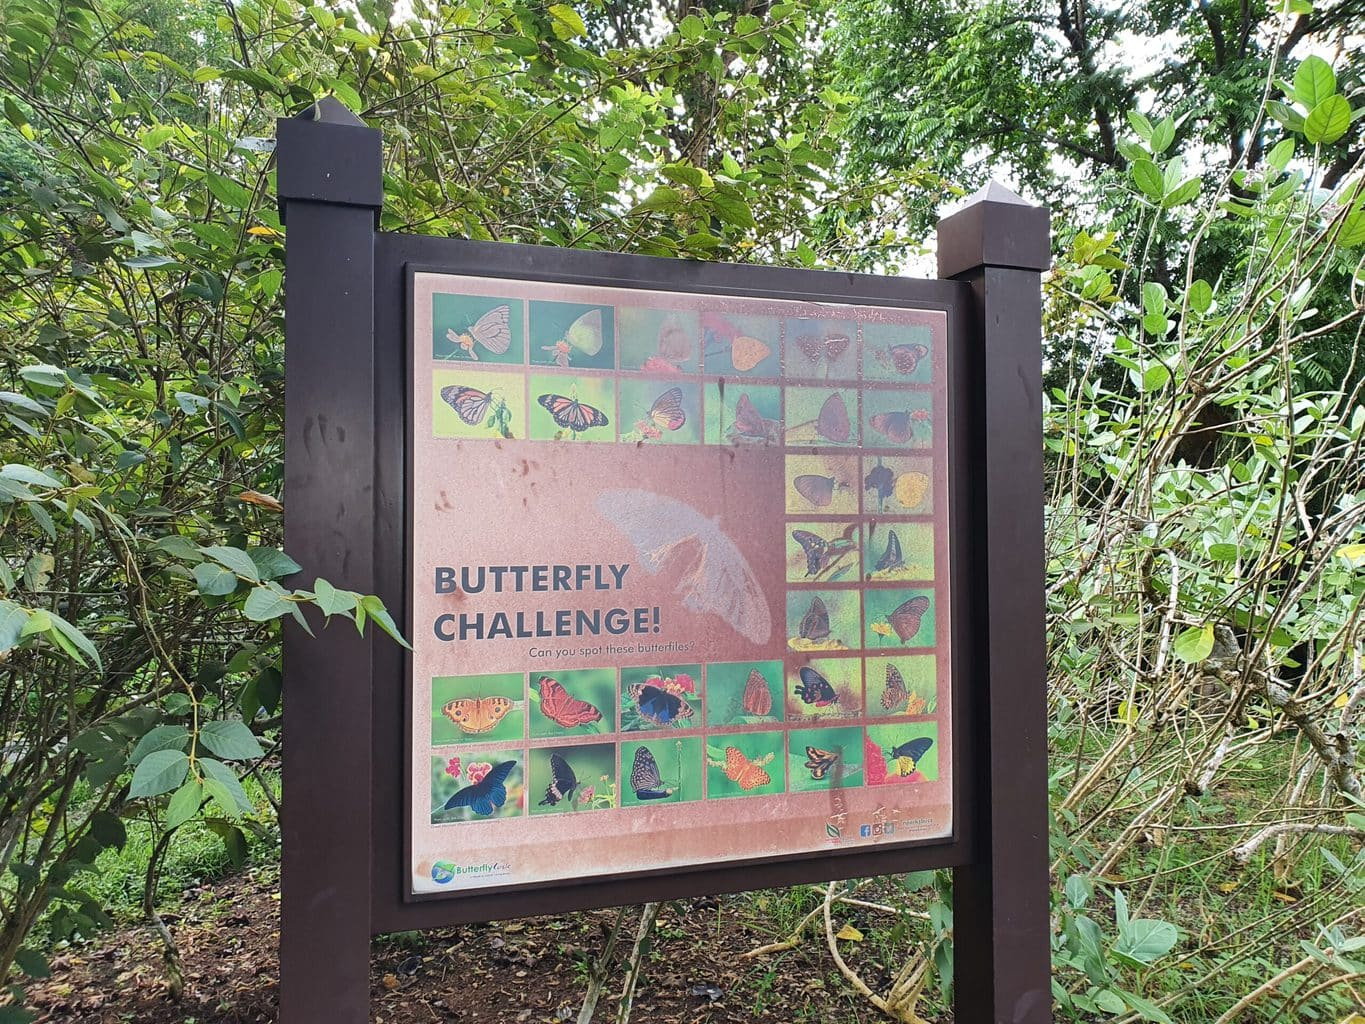 Butterfly hill in Pulau Ubin